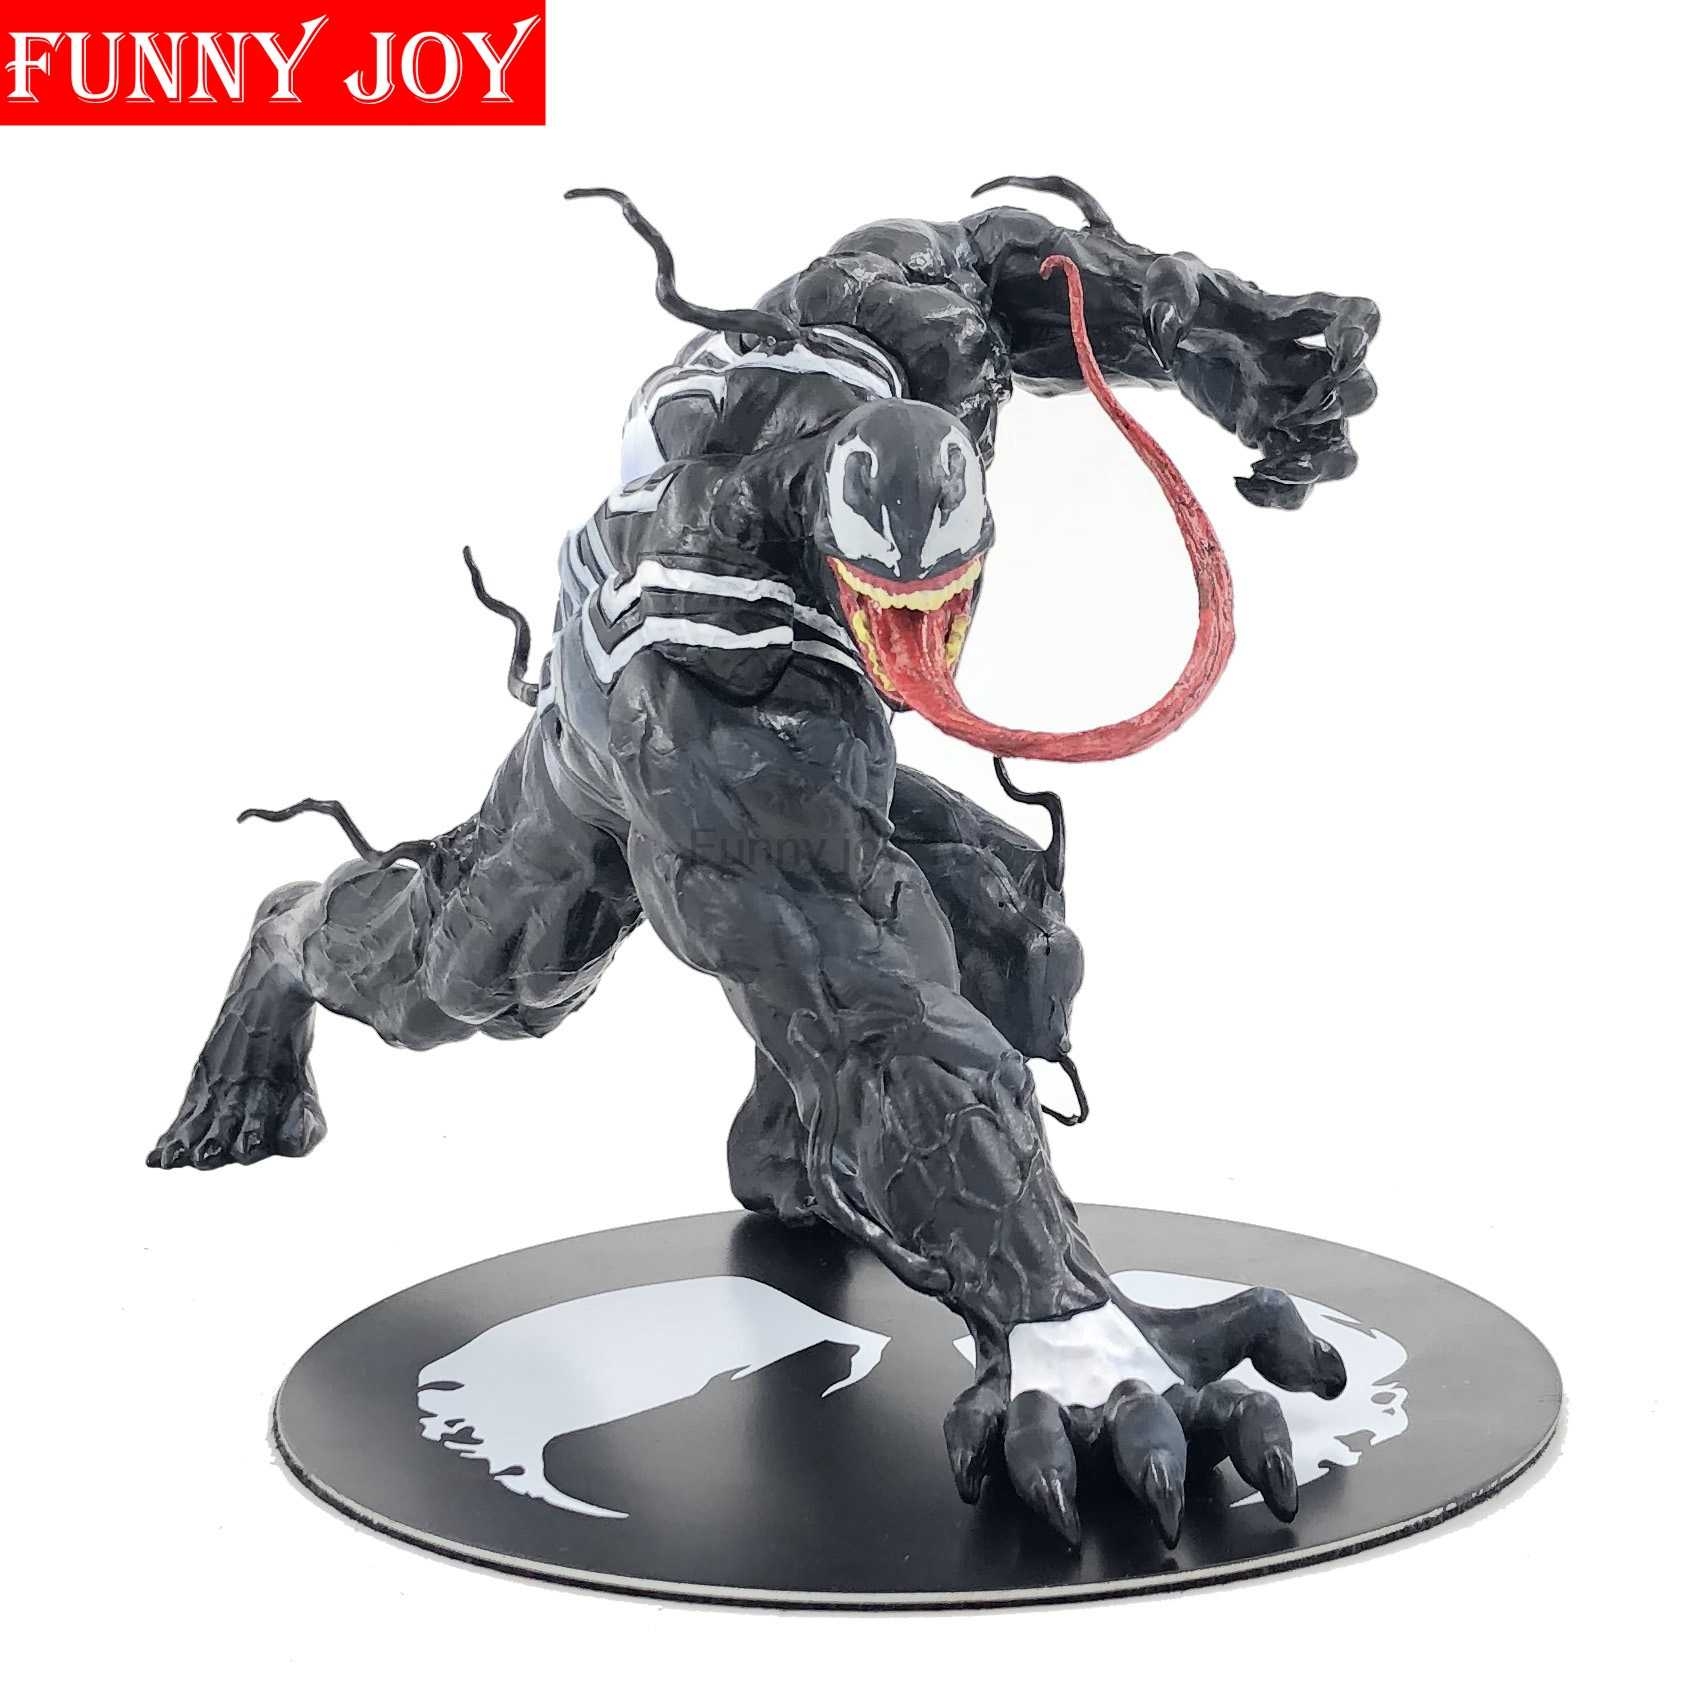 Spider Man Venom Figura ARTFX + X HOMENS X-MEN Edward Brock Iron Man Wolverine PVC Action Figure Modelo Coleção Toy presente